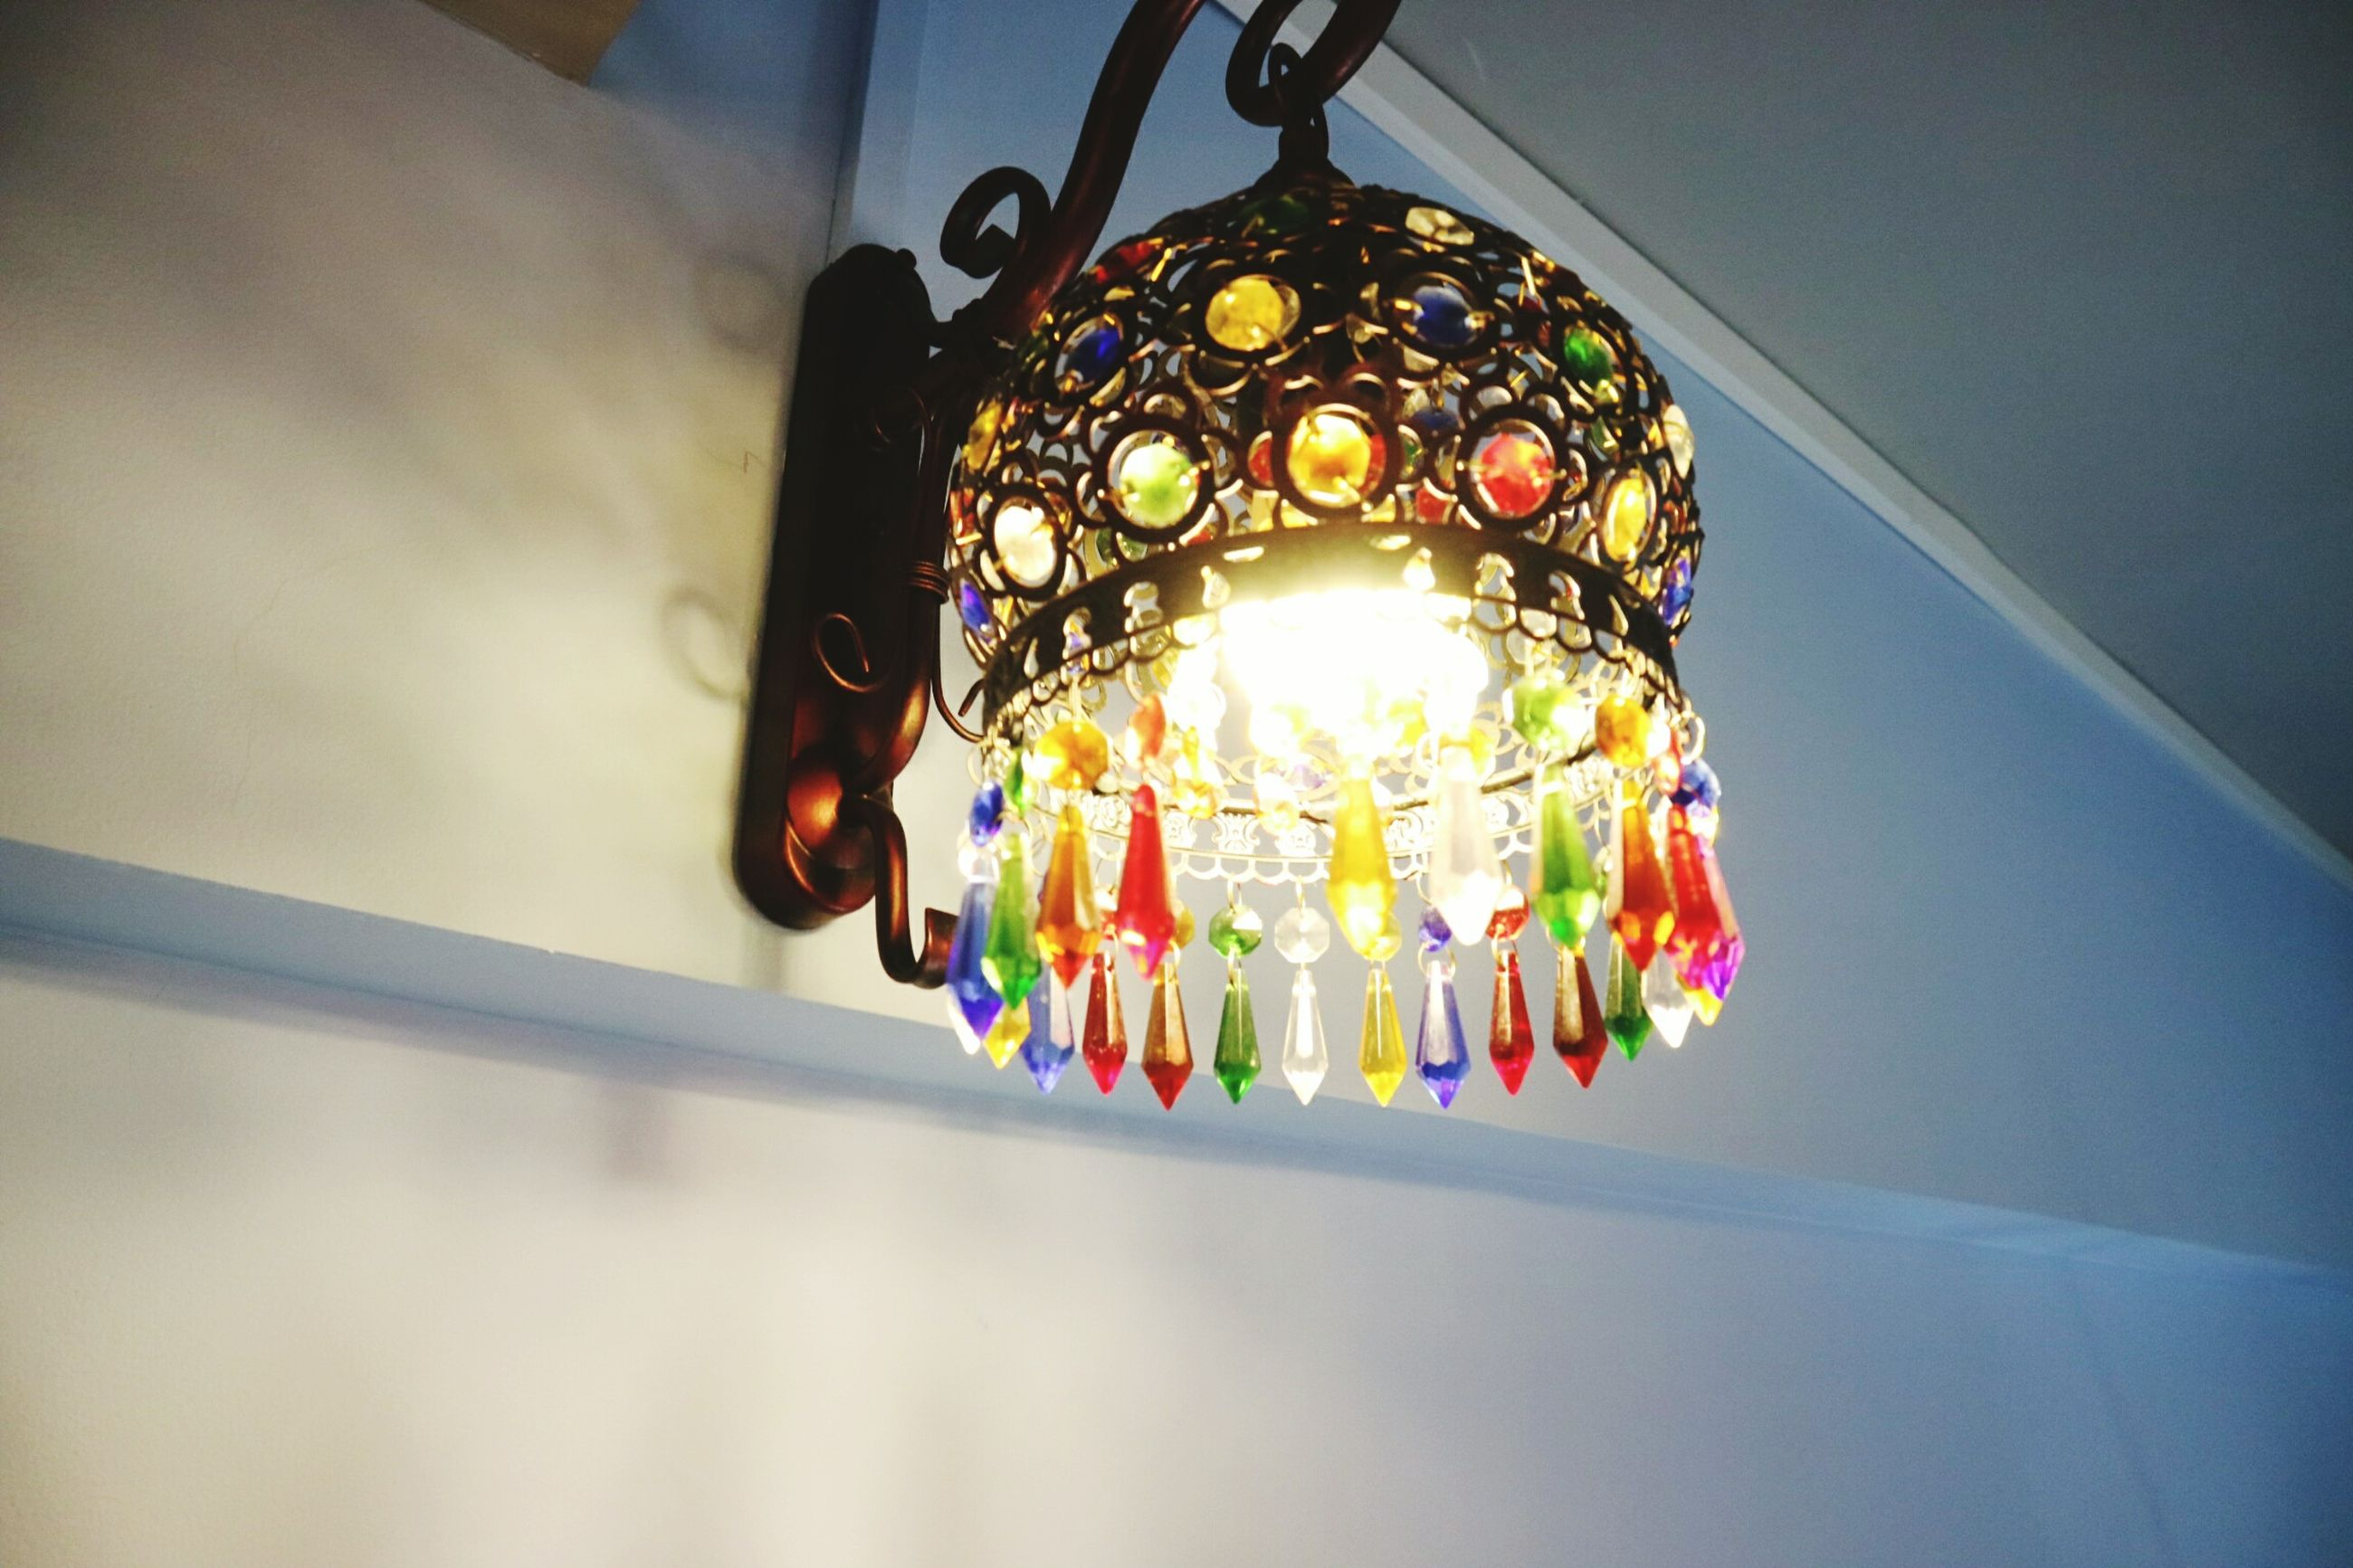 hanging, decoration, low angle view, multi colored, illuminated, indoors, lighting equipment, no people, architecture, close-up, day